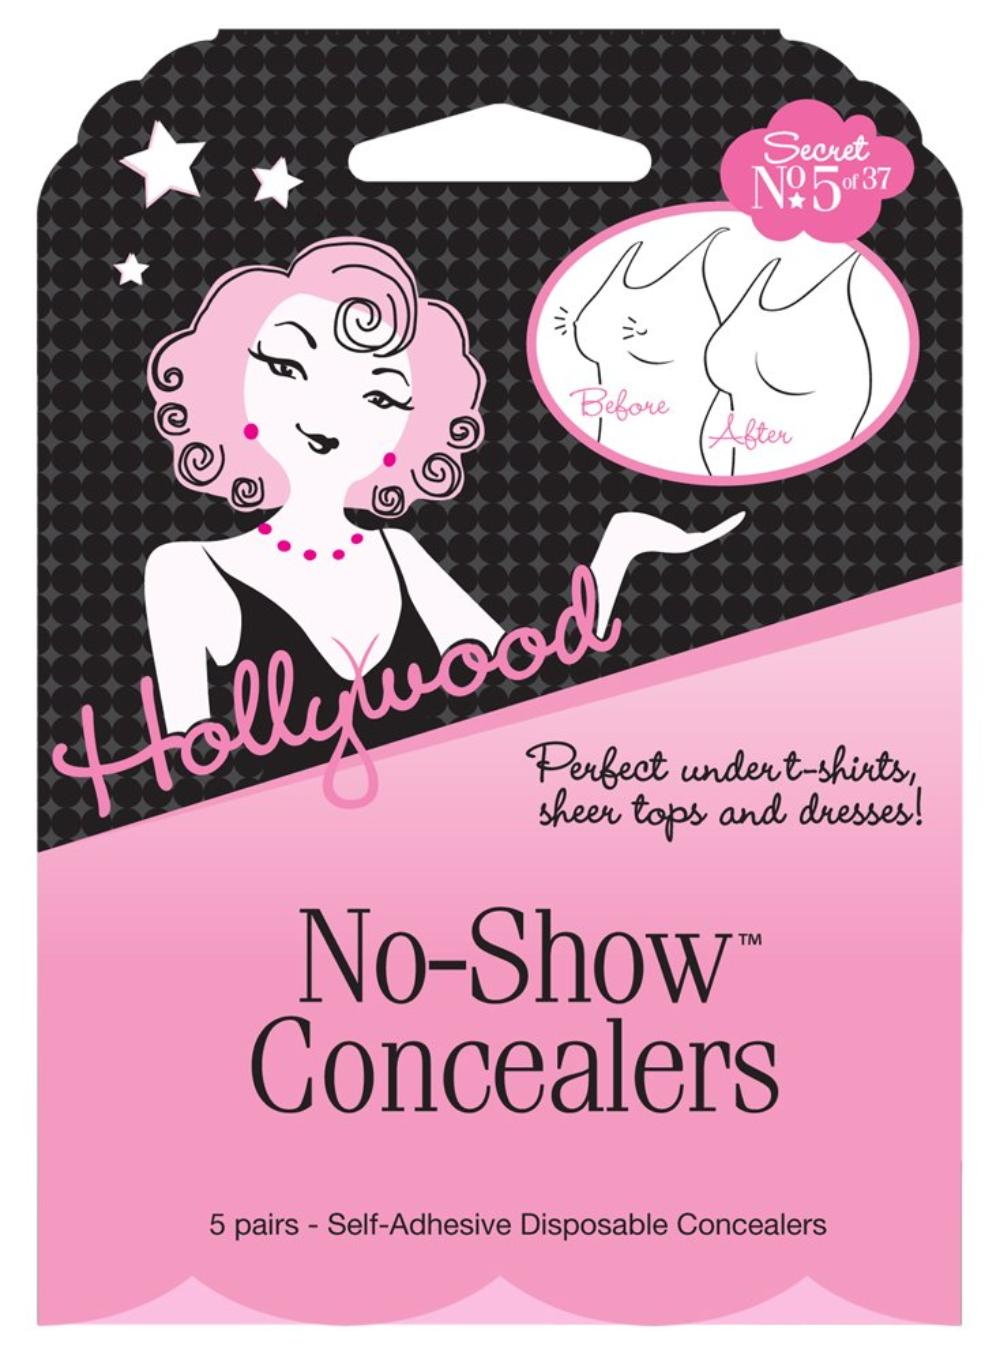 Disposable CoverUps Hollywood Fashion No-Show Concealers 5 Pairs